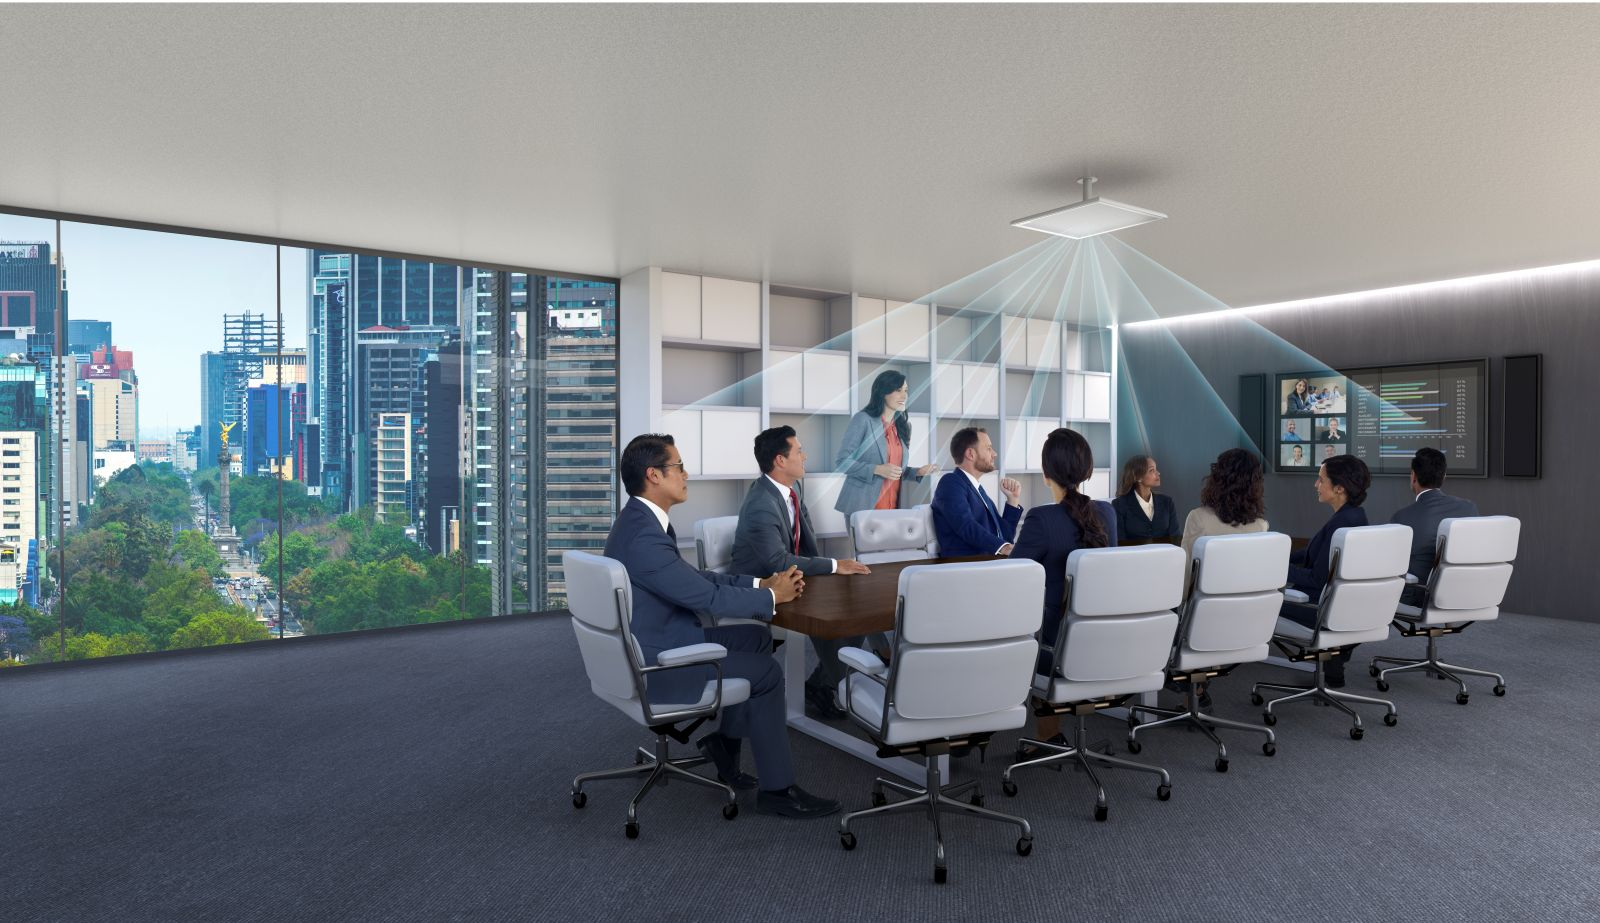 MXA910 Captures Audio in Boardroom Meeting